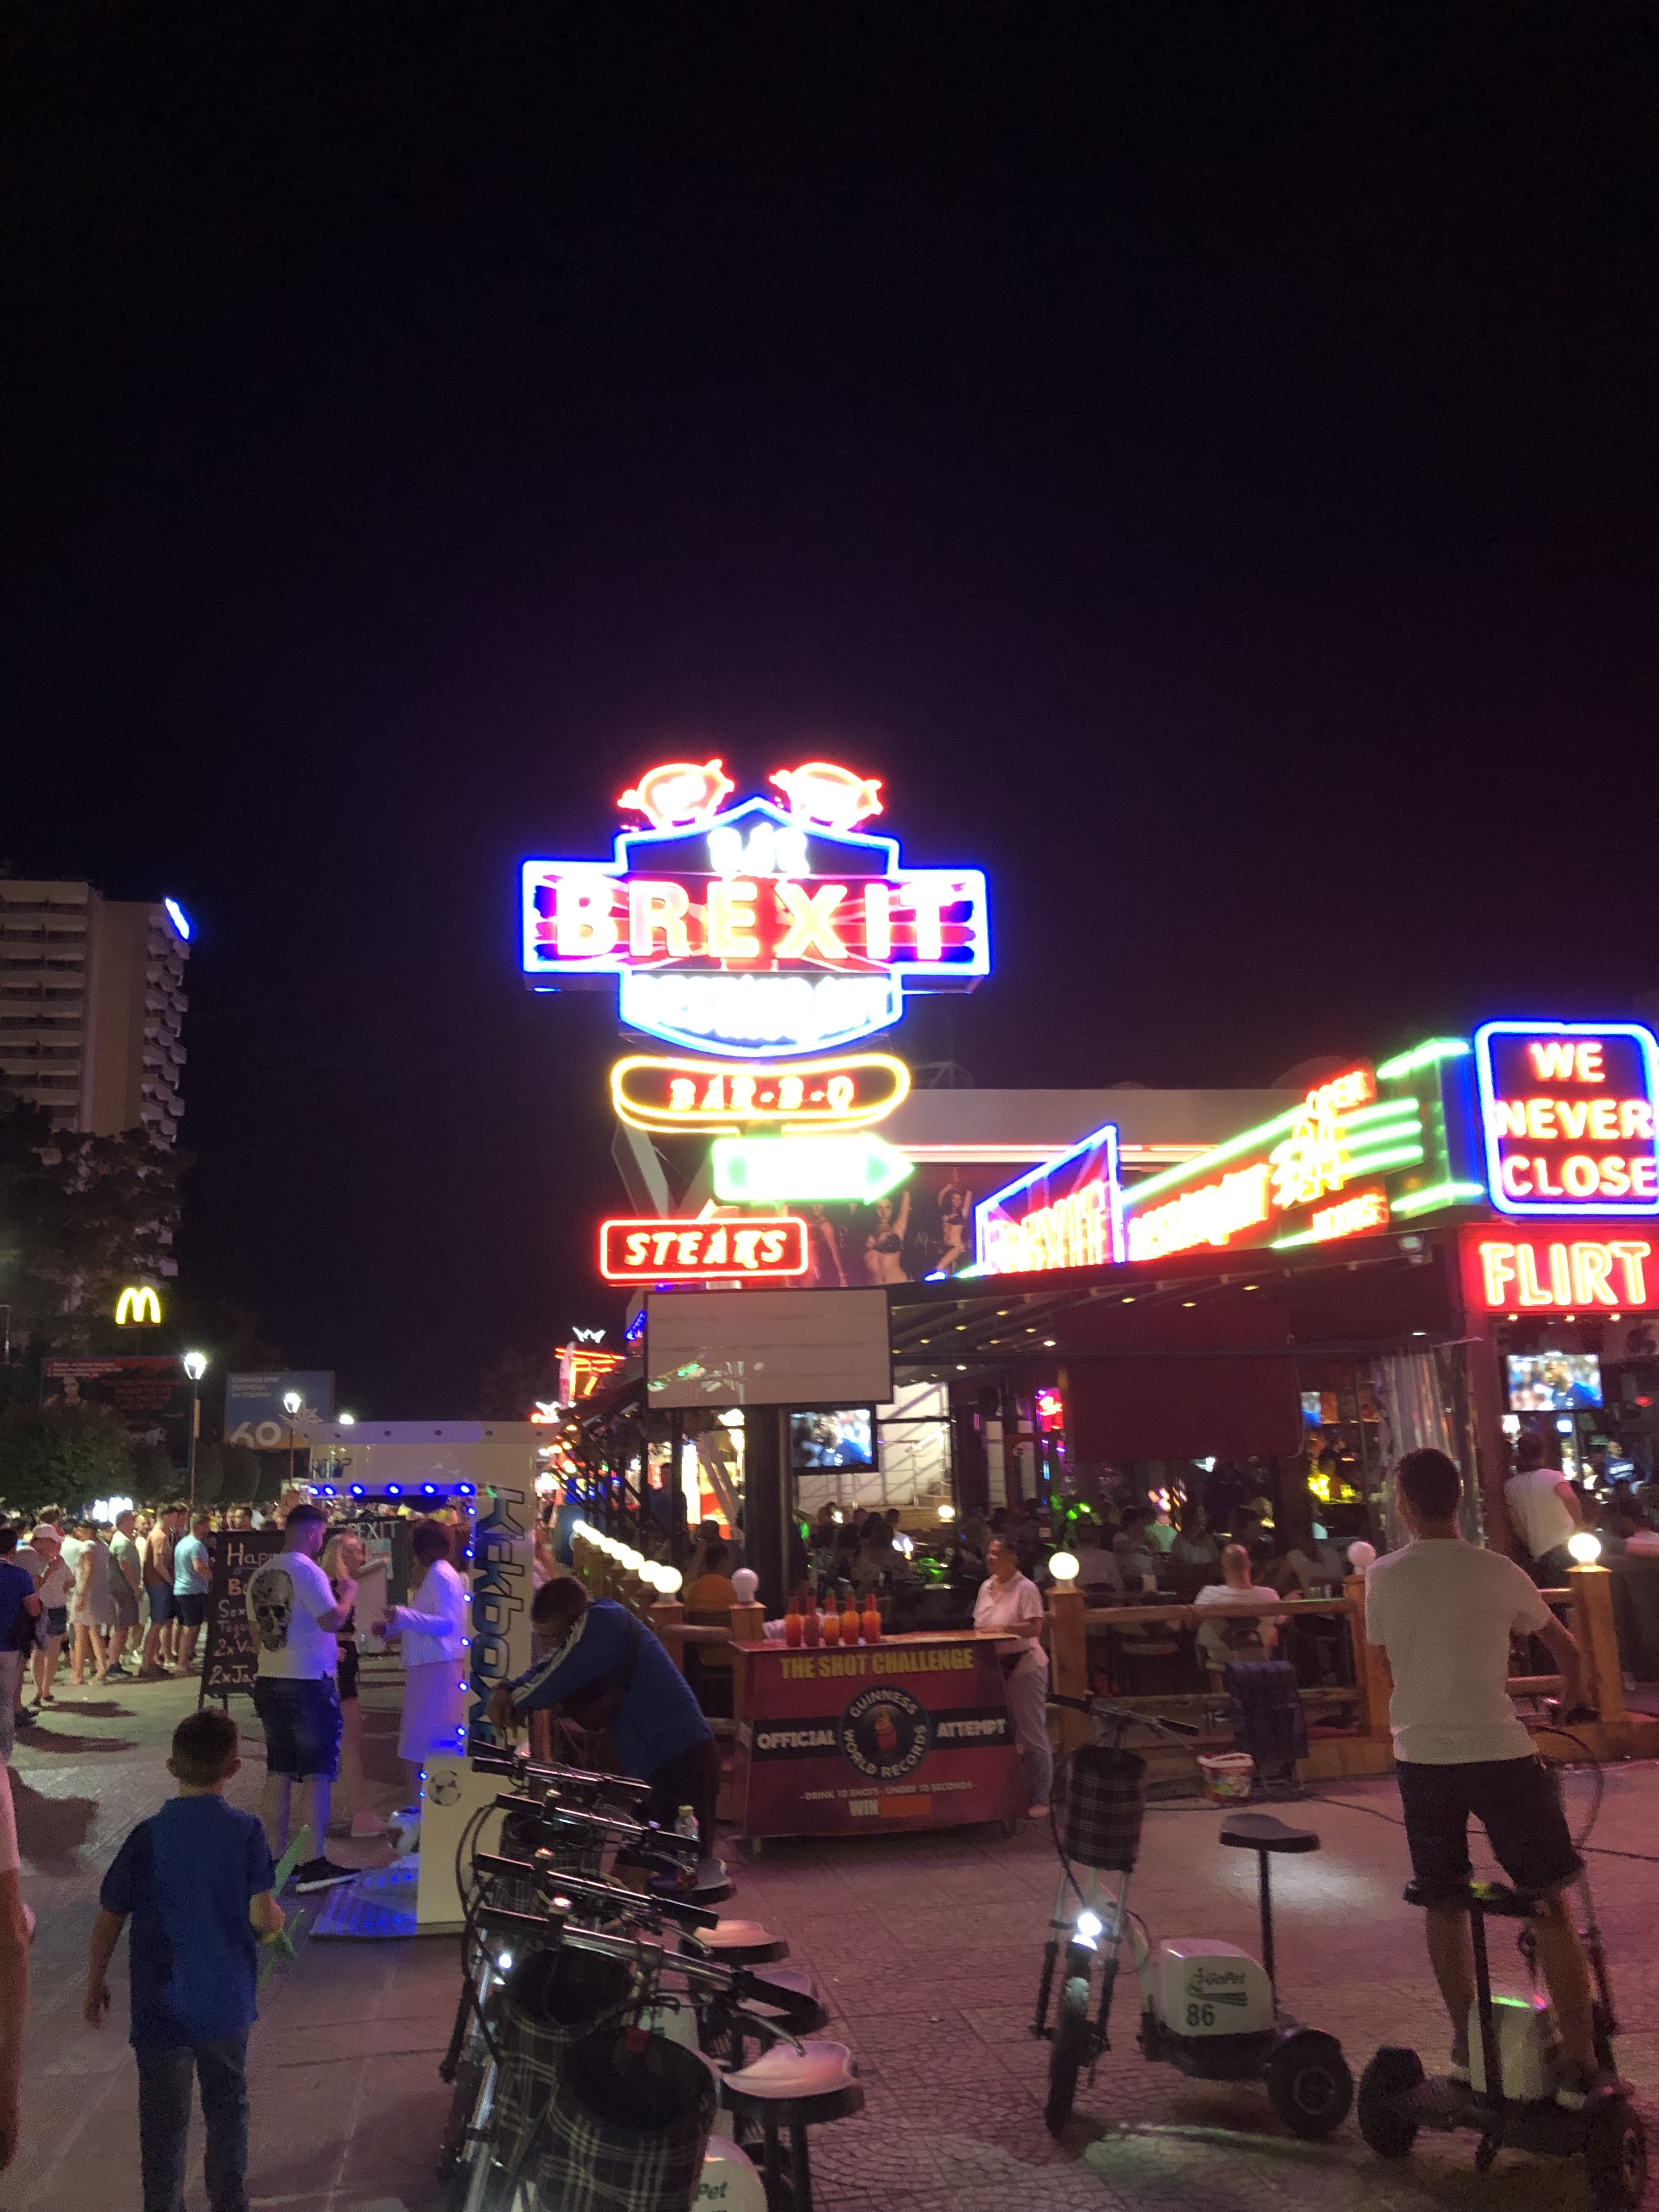 Sunny beach by night